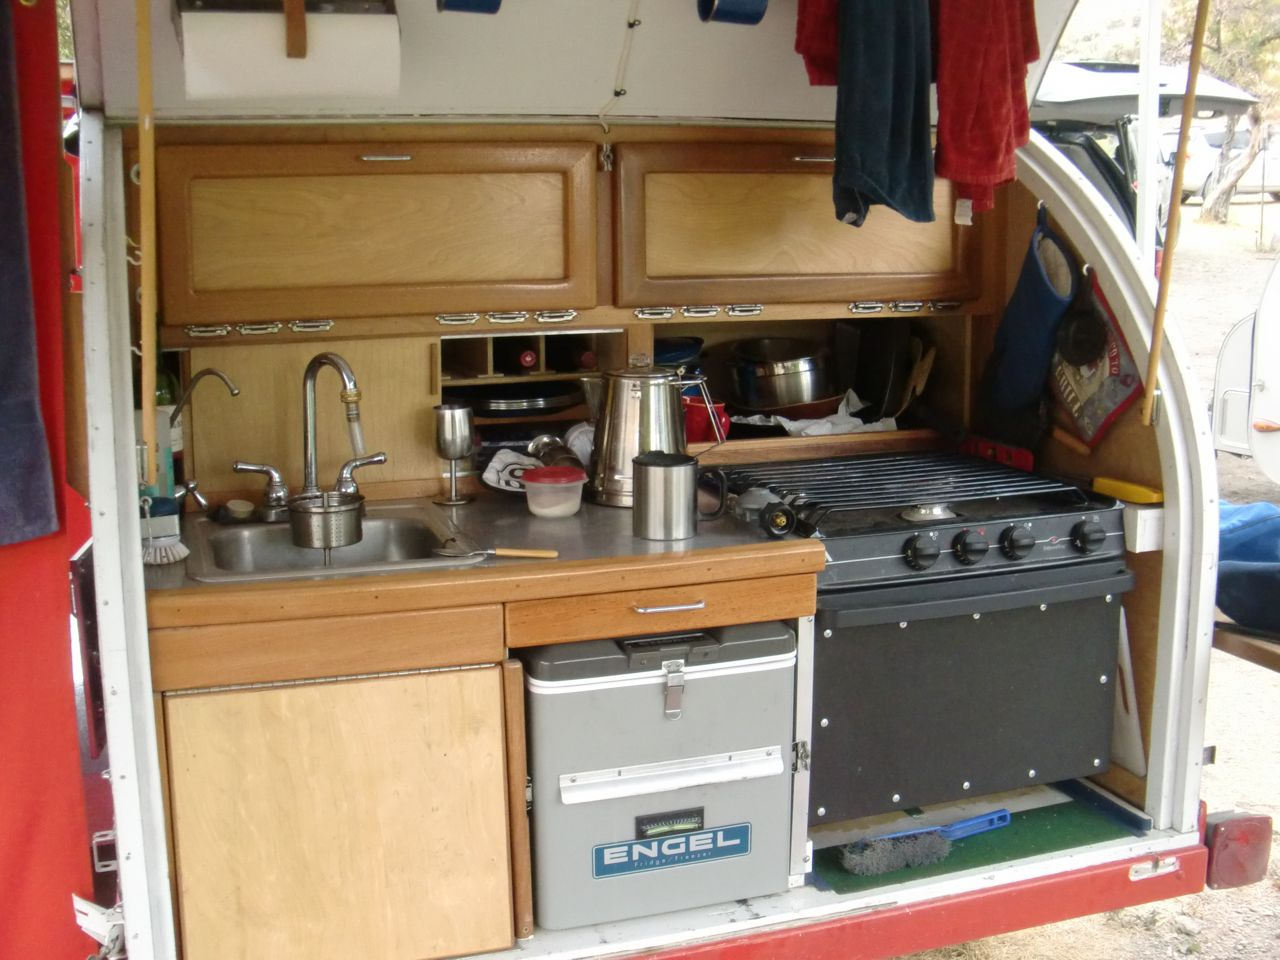 Camper Trailer Kitchen Similiar Teardrop Trailer Galley Keywords